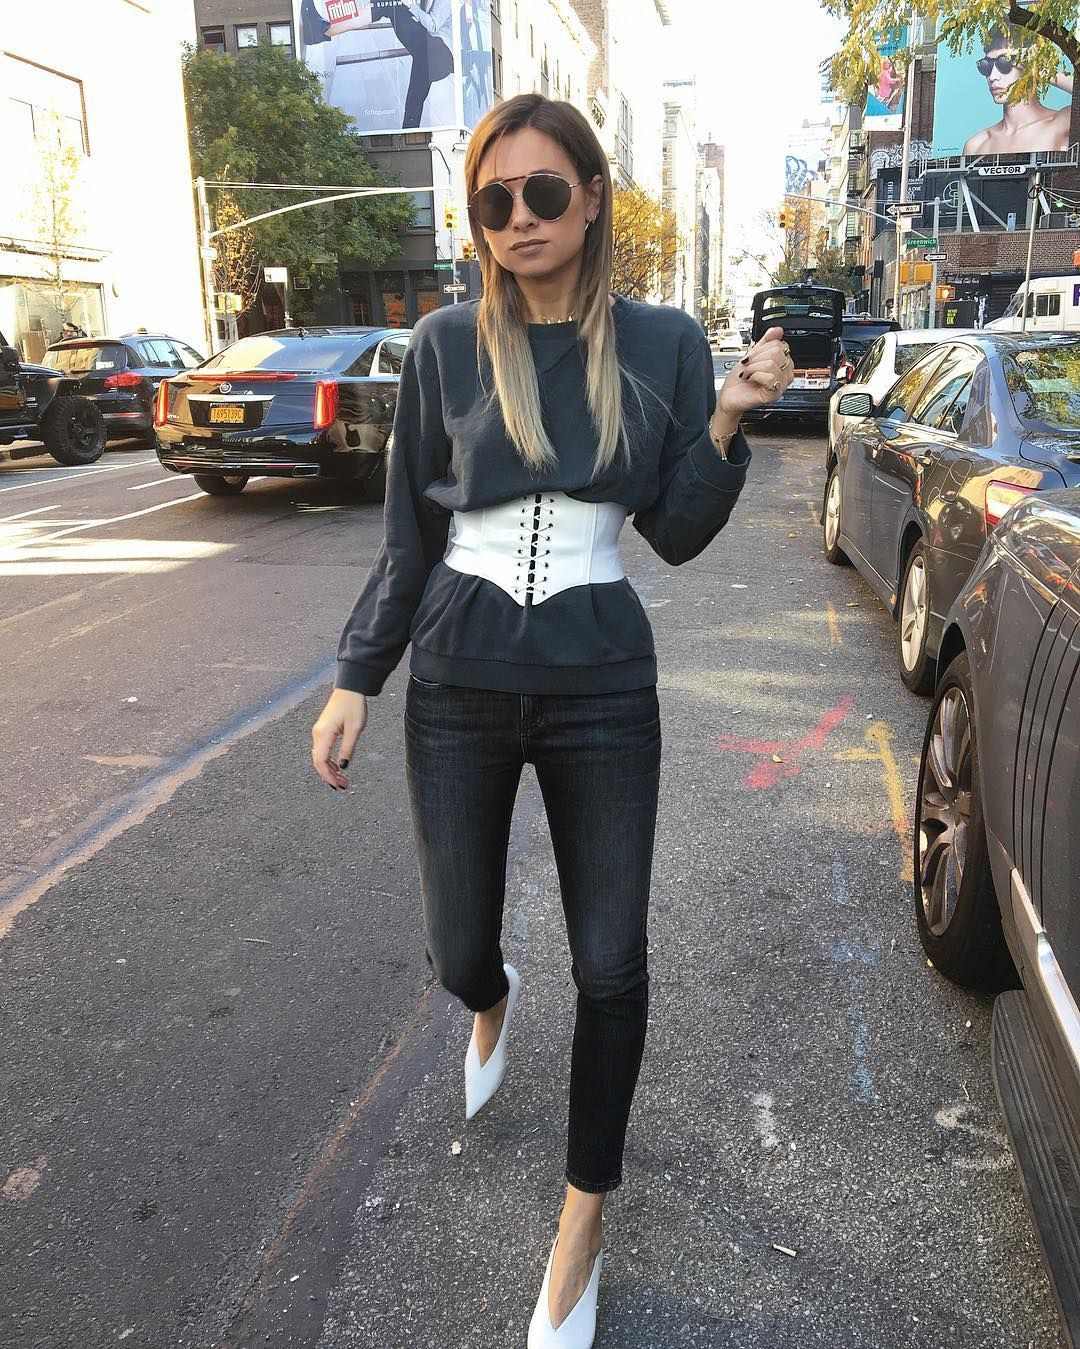 a5b3cb40b69 Bustier on Top Tip  Shop for a corset to wear over an oversize sweatshirt  or graphic T-shirt. It ll flatter the tiniest part of your body and  highlight an ...